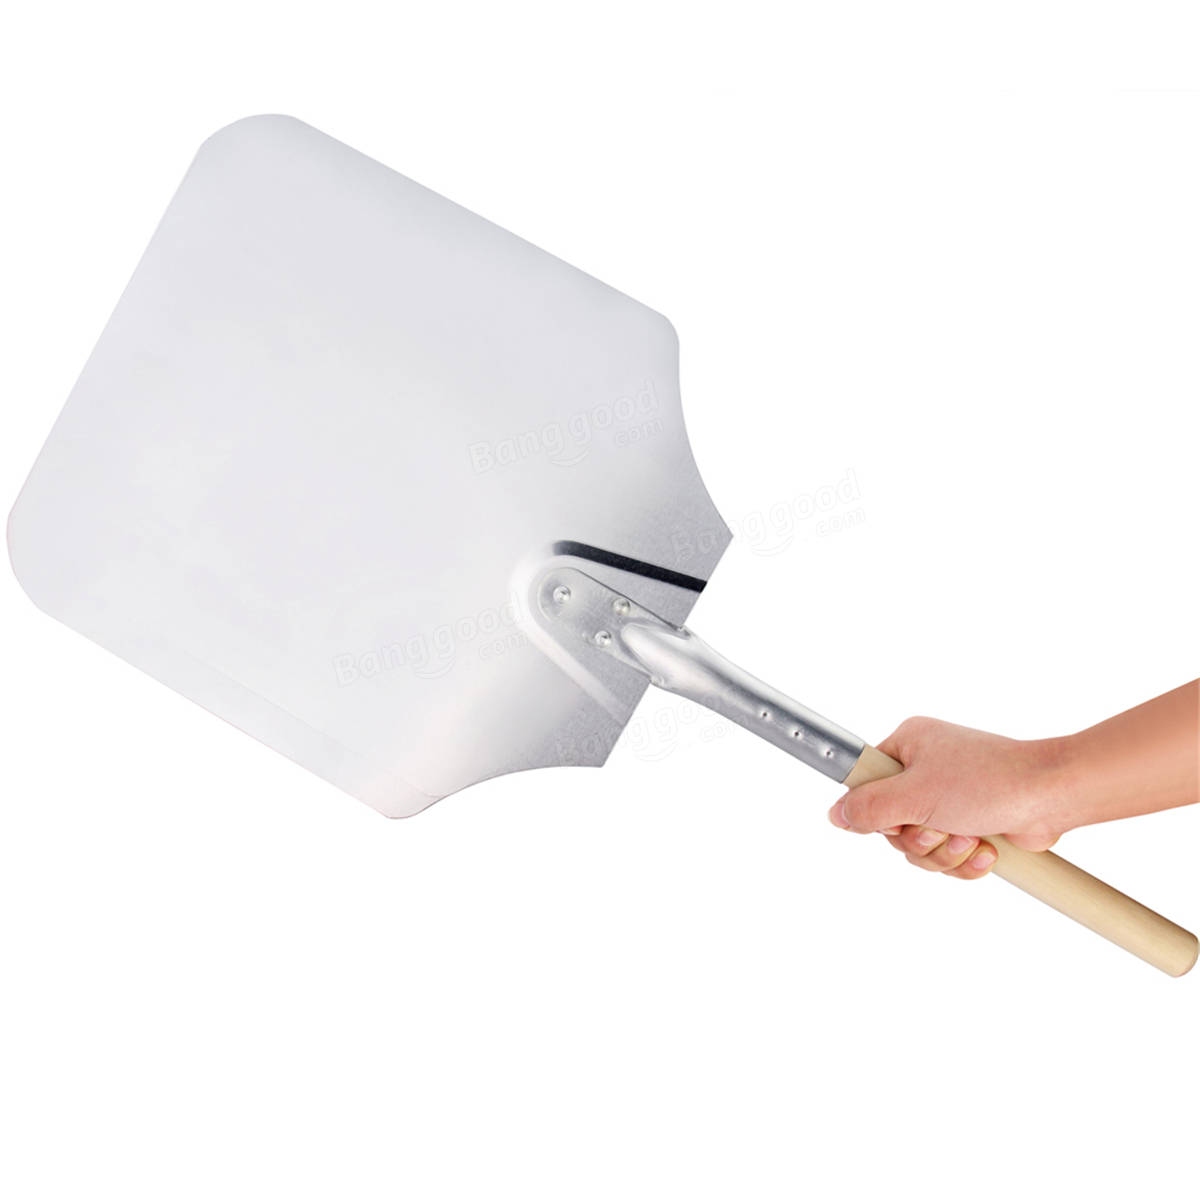 Proffesional Aluminium Alloy Shovel Pizza Shovel Cheese Shovel Knife Spatula Baking Tool